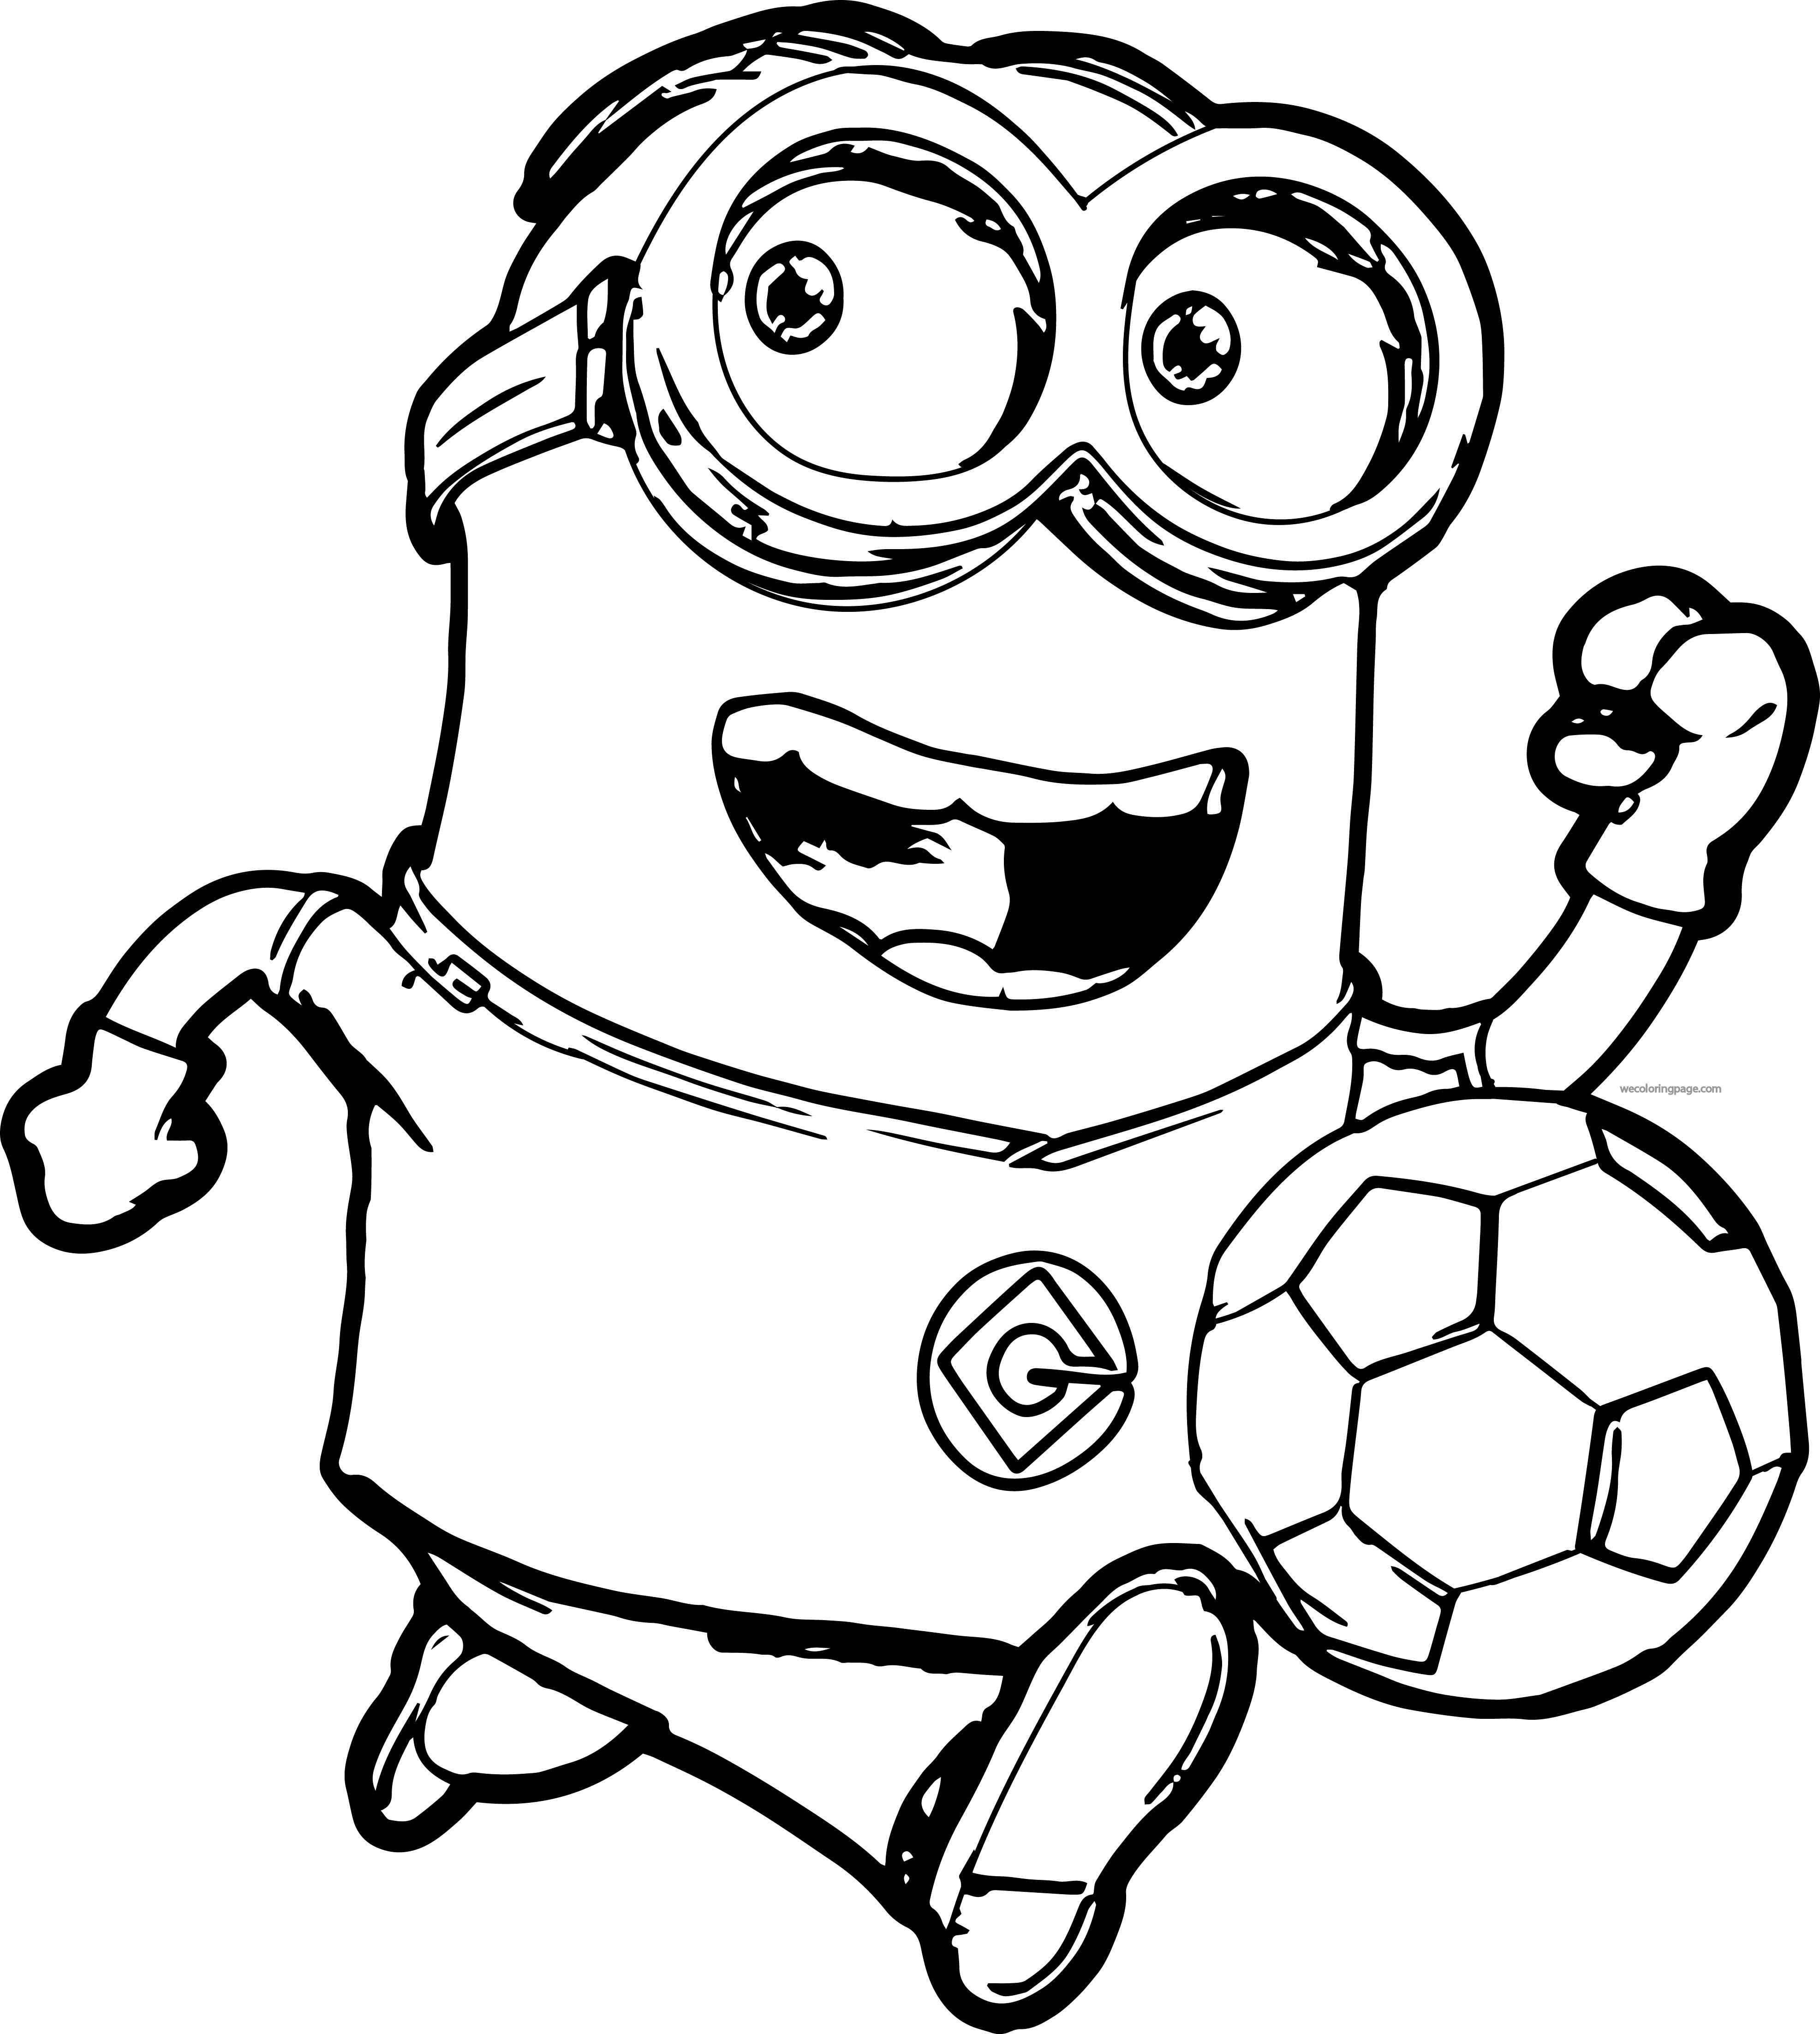 minions drawing how to draw minion carl with a loudspeaker step by step drawing minions